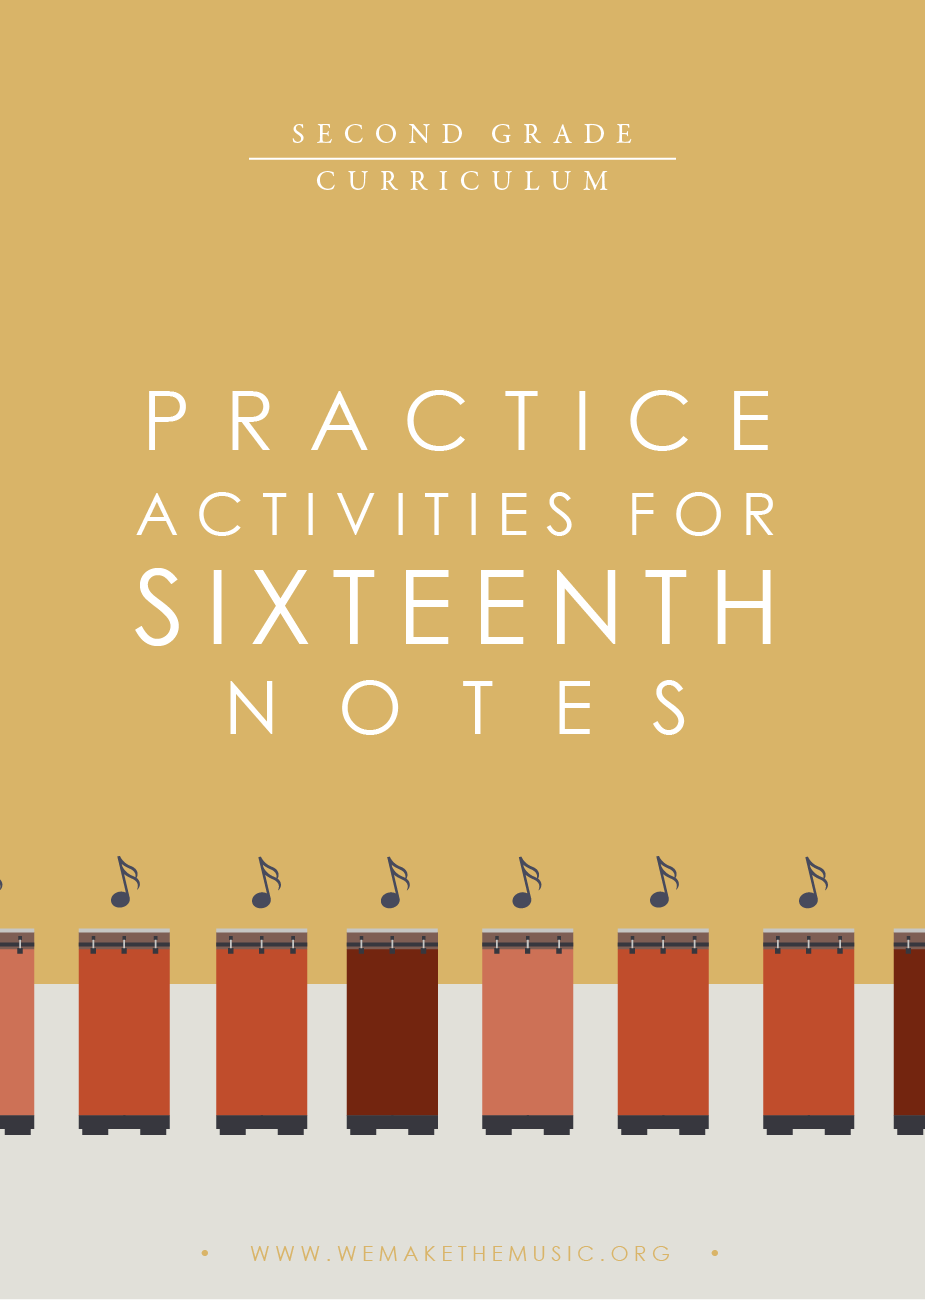 Practice Activities for 16th Notes